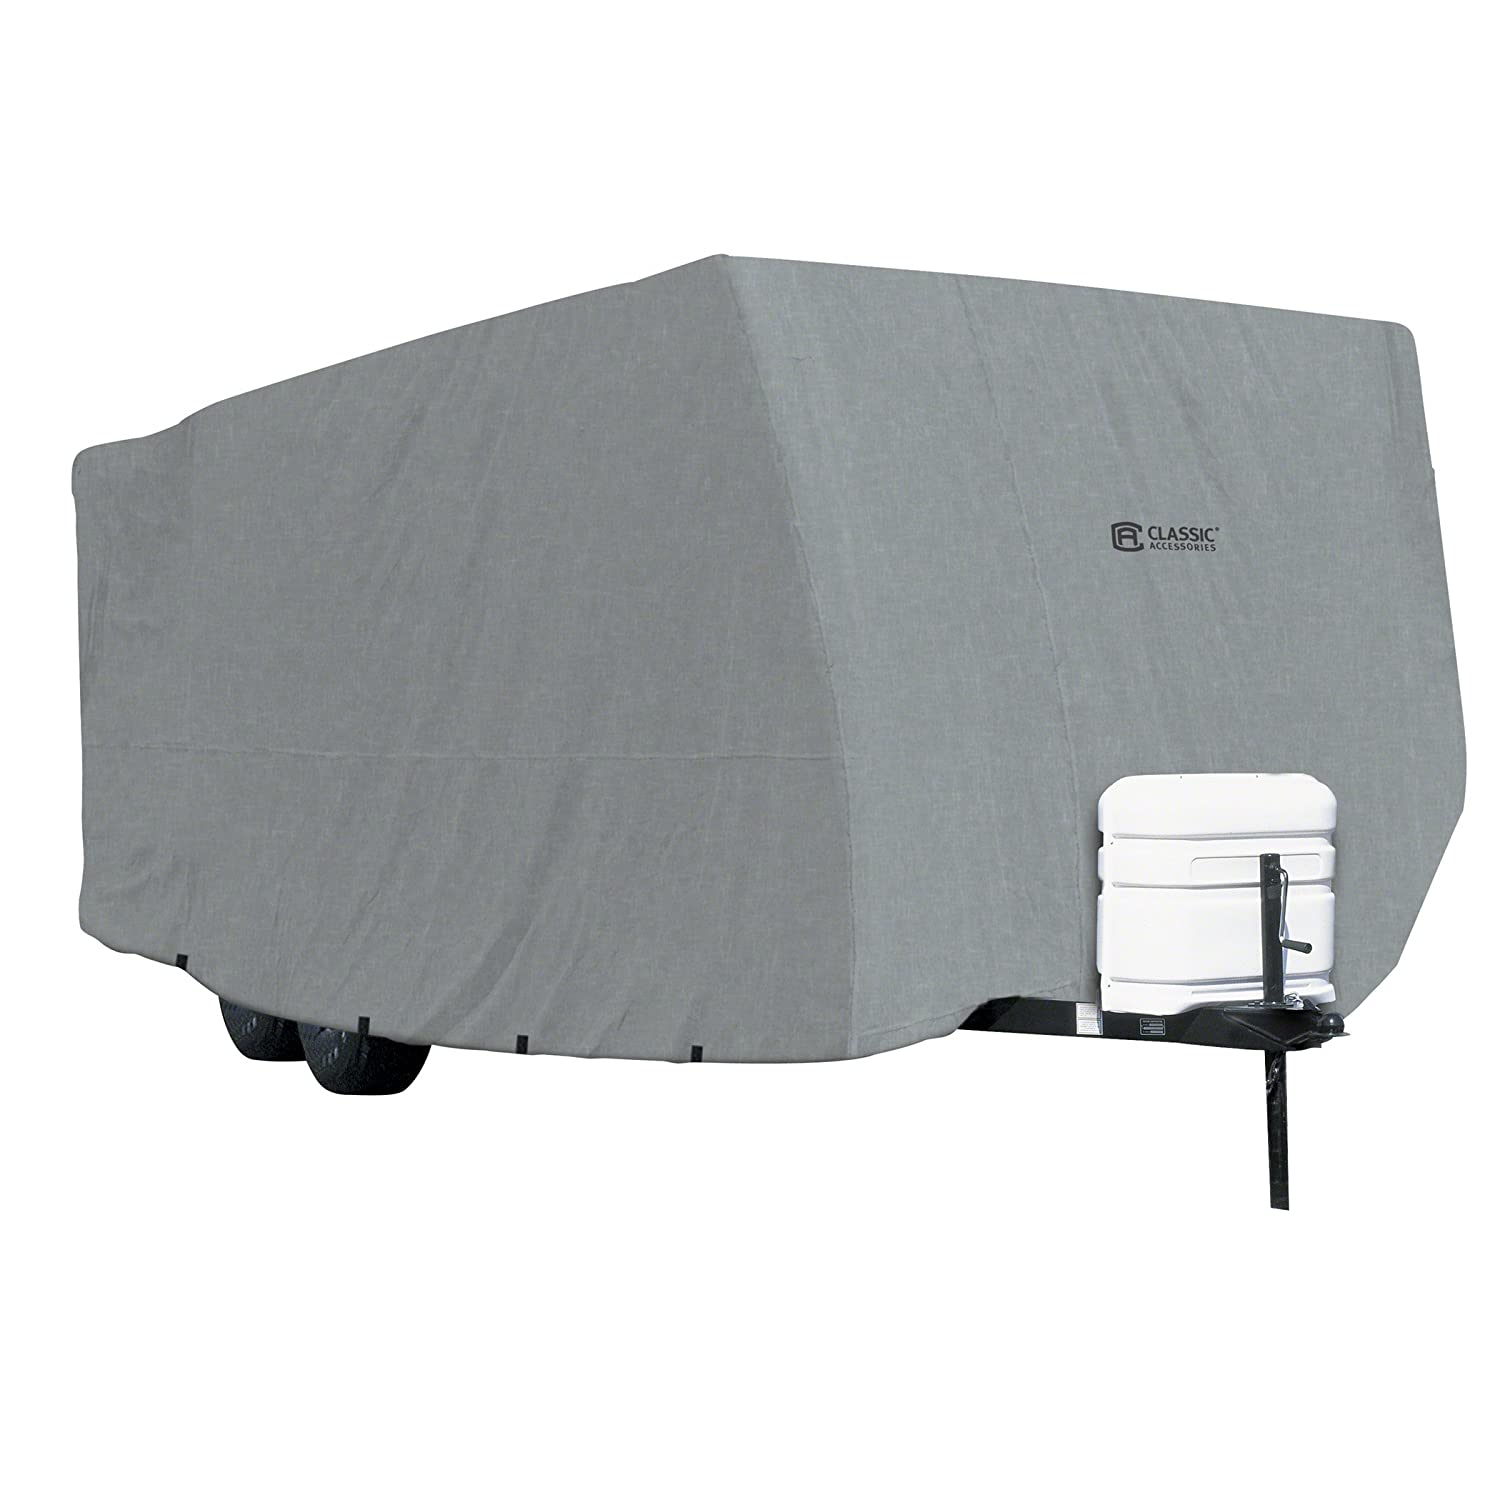 Classic Accessories OverDrive PolyPRO 1 Travel Trailer RV Cover, Fits 27' - 30' RVs - Breathable and Water Repellant Travel Trailer Cover (80-178-181001-00) Fits 27' - 30' RVs - Breathable and Water Repellant Travel Trailer Cover (80-178-181001-00)